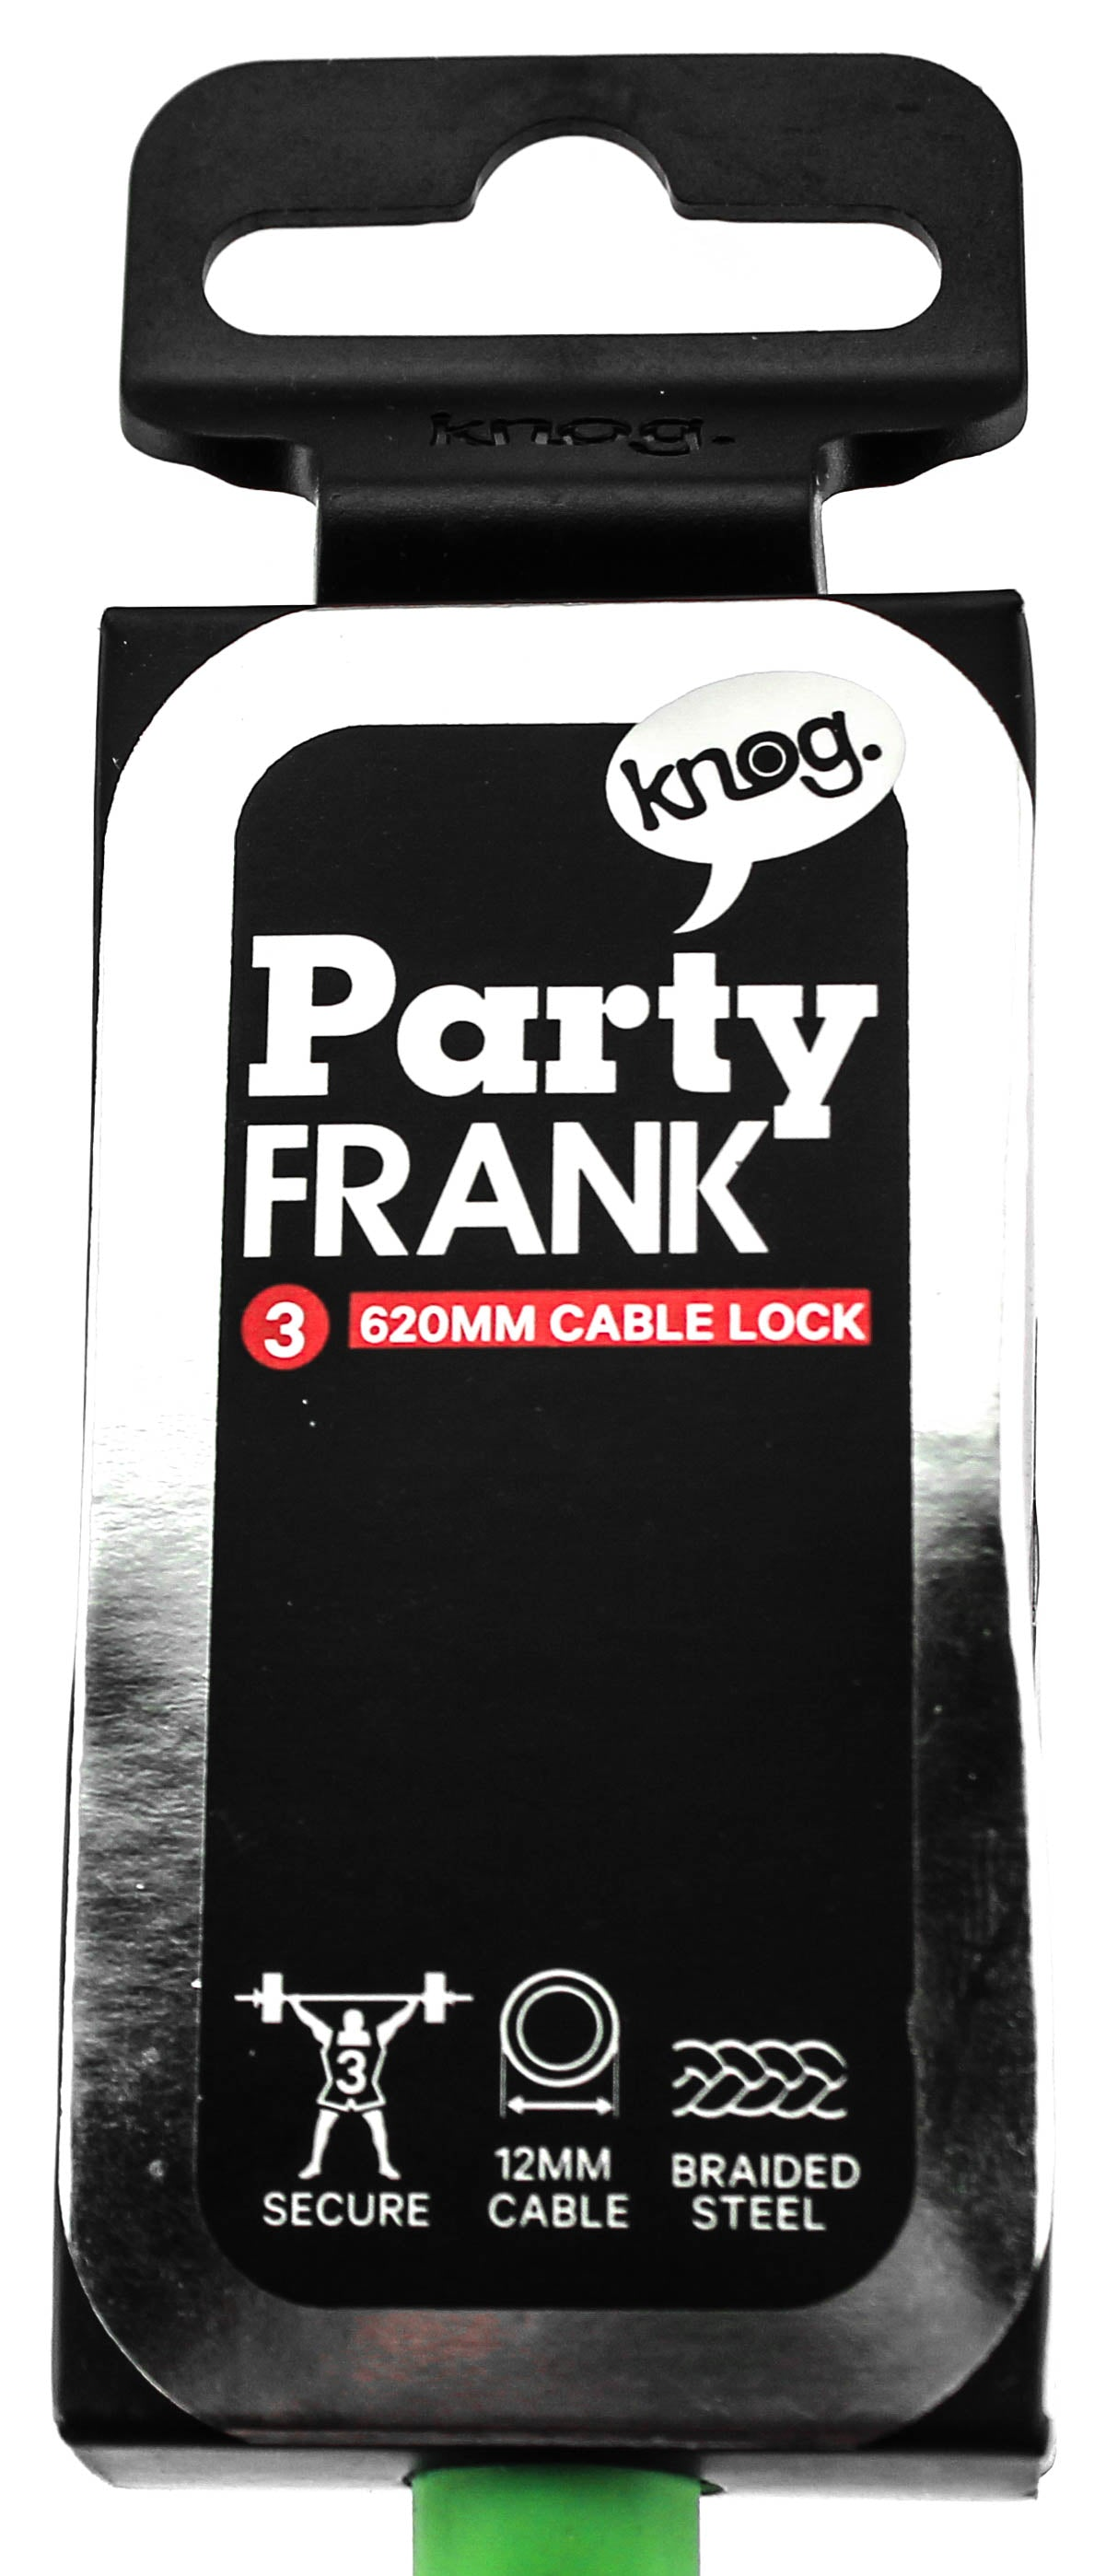 KNOG PARTY FRANK 620mm Cable Bike Lock With Bracket Lime Green Keyed Steel NEW